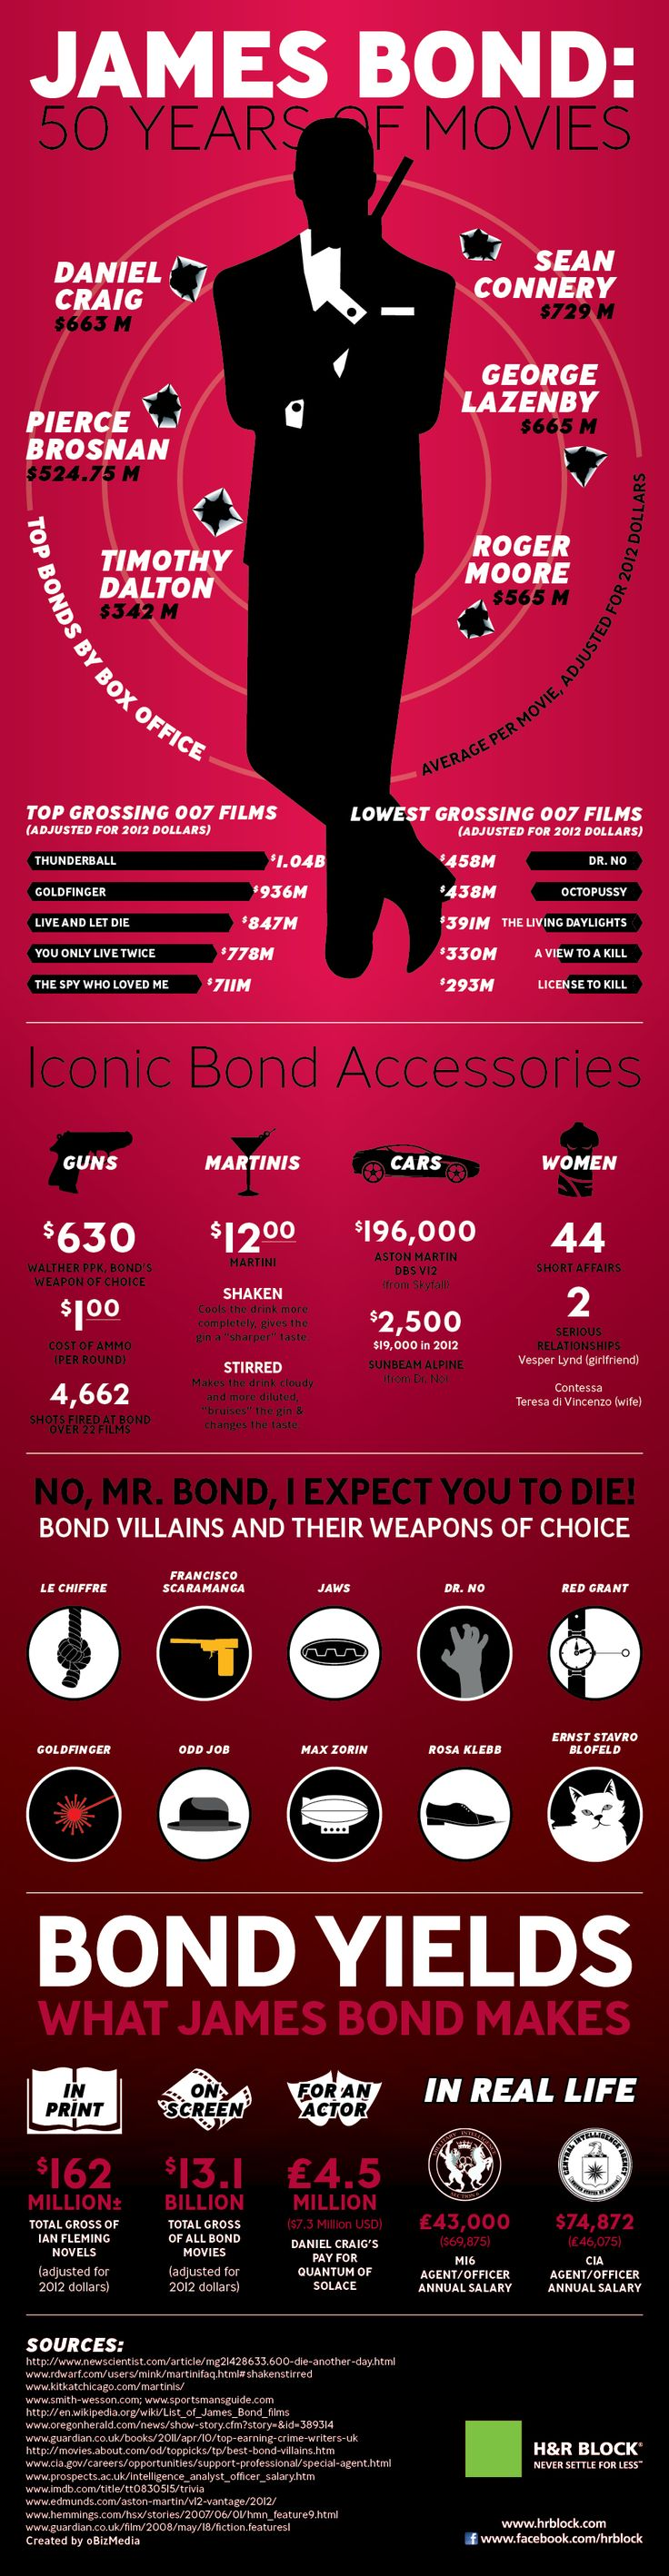 James Bond: 50 years of movies #infographic